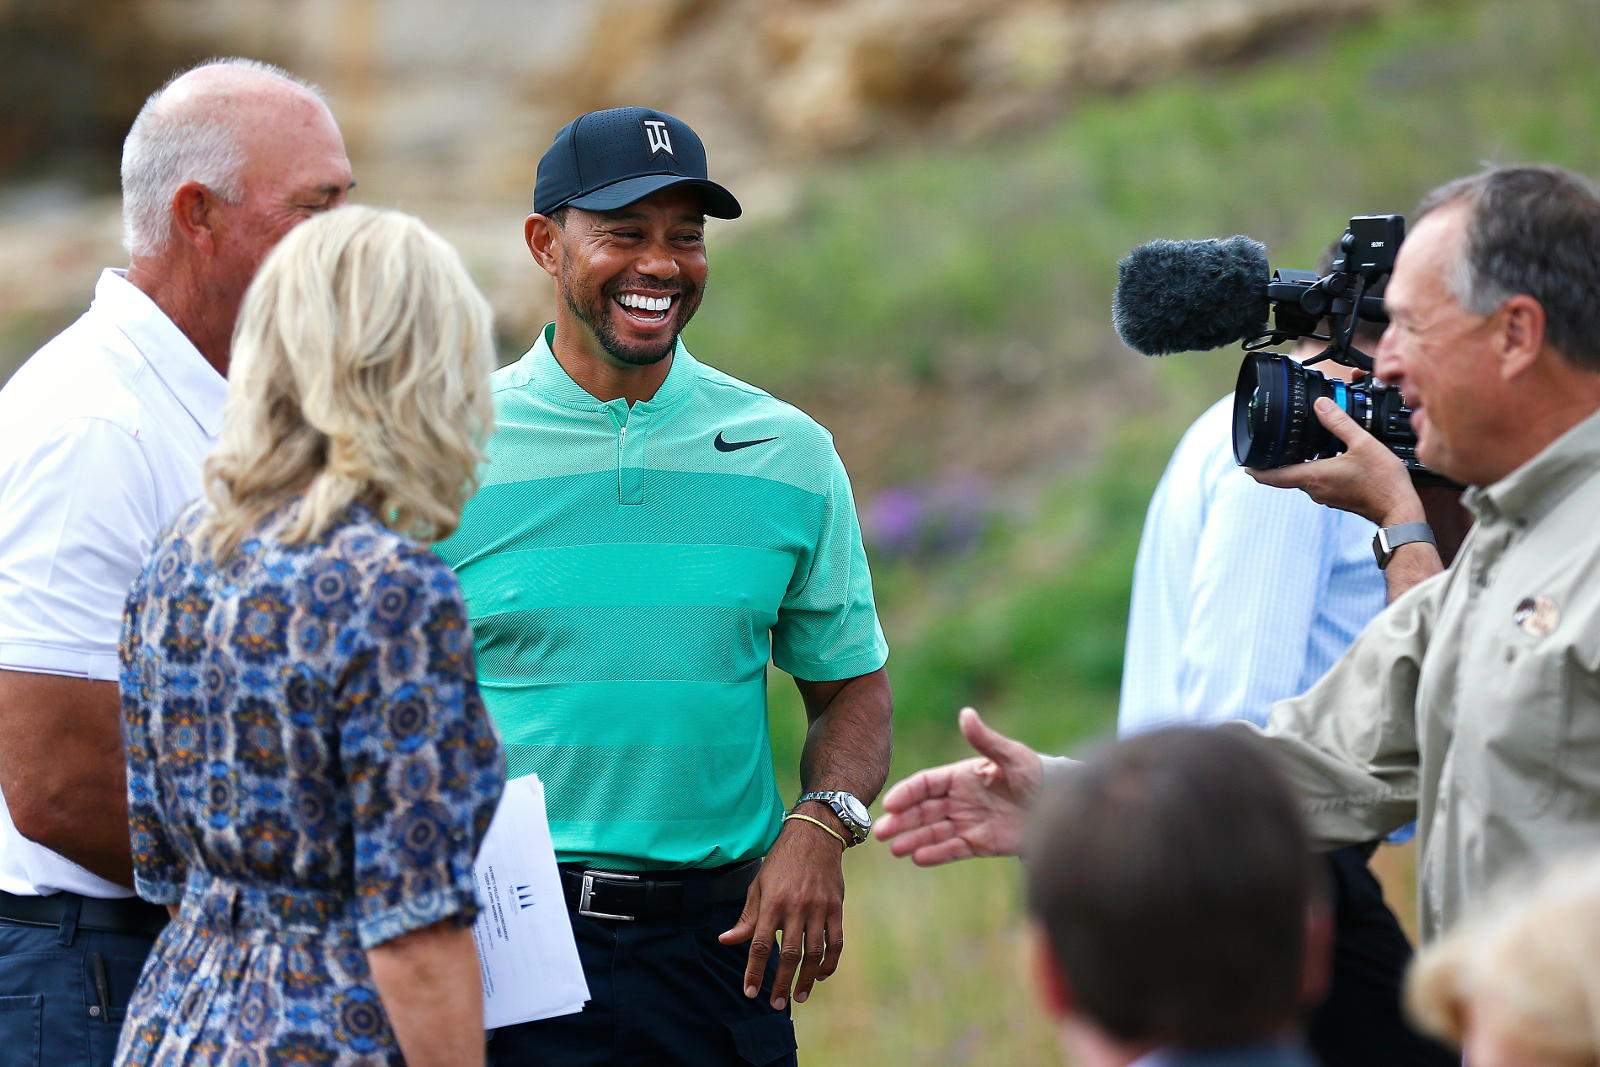 Tiger Woods smiles during a press event for a new golf course he designed in Hollister, Missouri, Tuesday, April 18. (Guillermo Martinez/The Springfield News-Leader via AP)